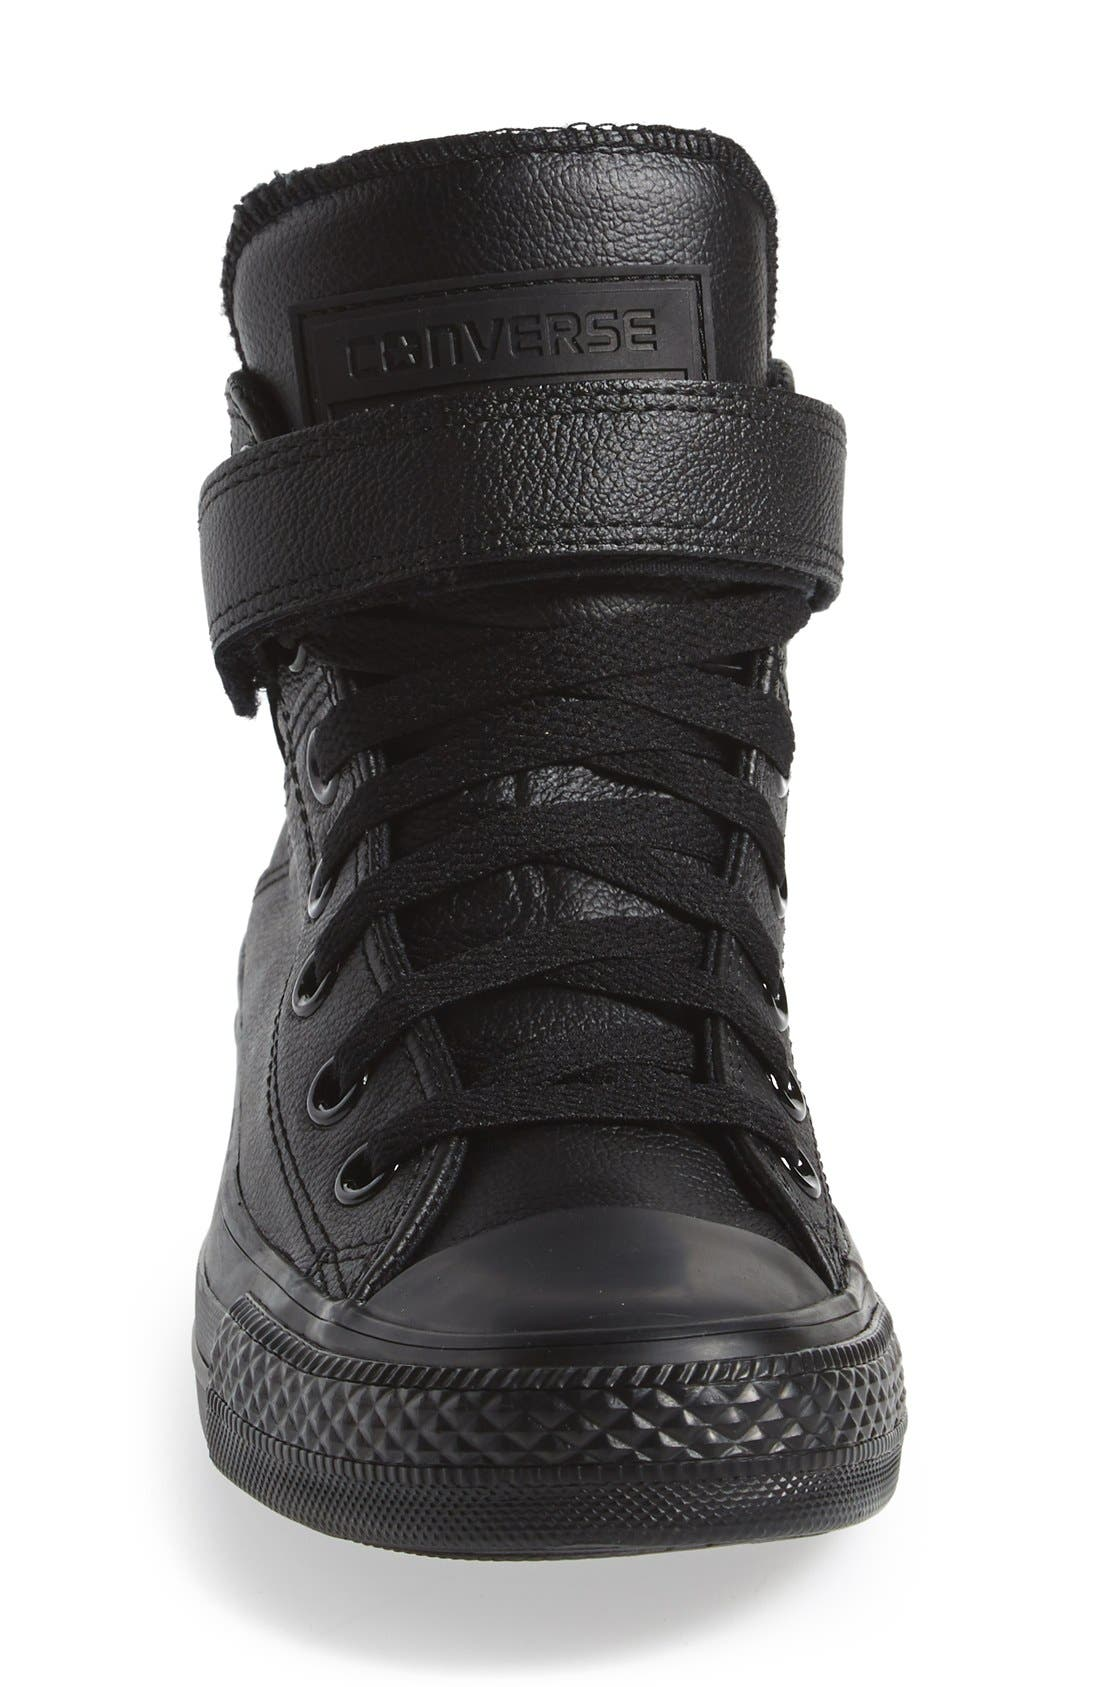 CONVERSE, Chuck Taylor<sup>®</sup> All Star<sup>®</sup> 'Brea' Leather High Top Sneaker, Alternate thumbnail 4, color, 001